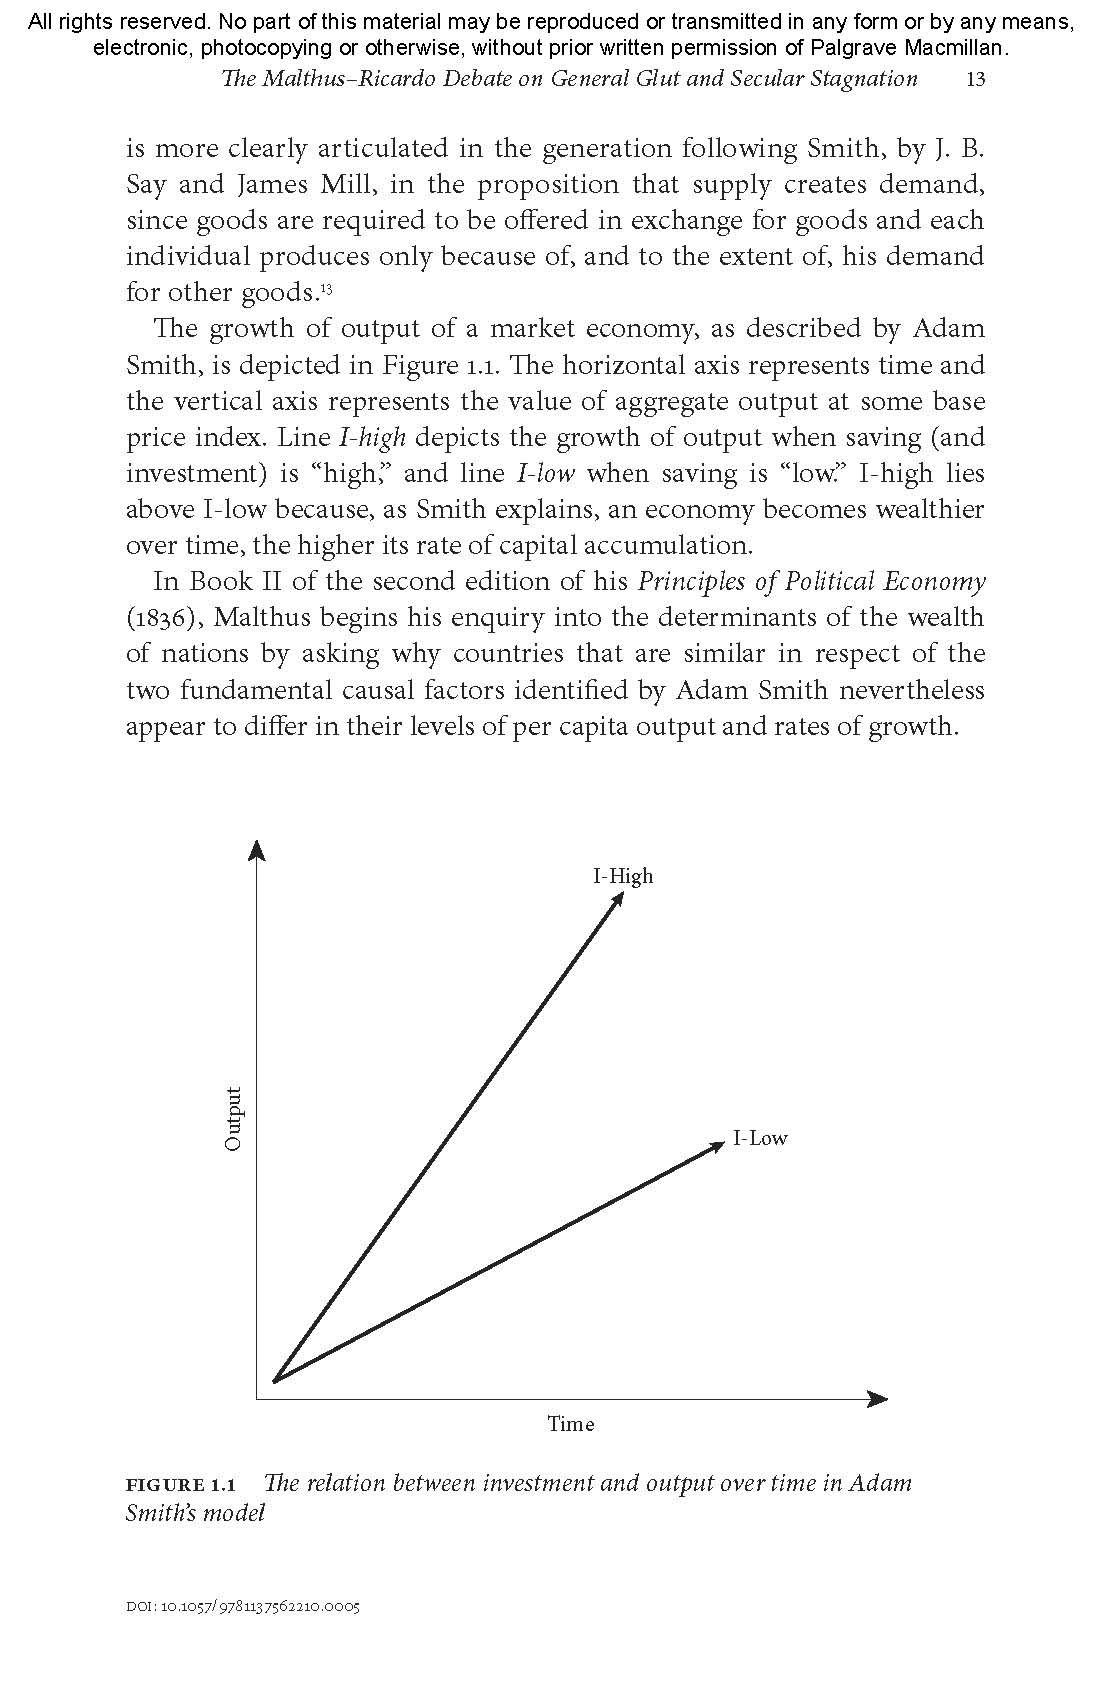 Pages from Accumulation and Secular Stagnation - pdf published book-2_Page_19.jpg